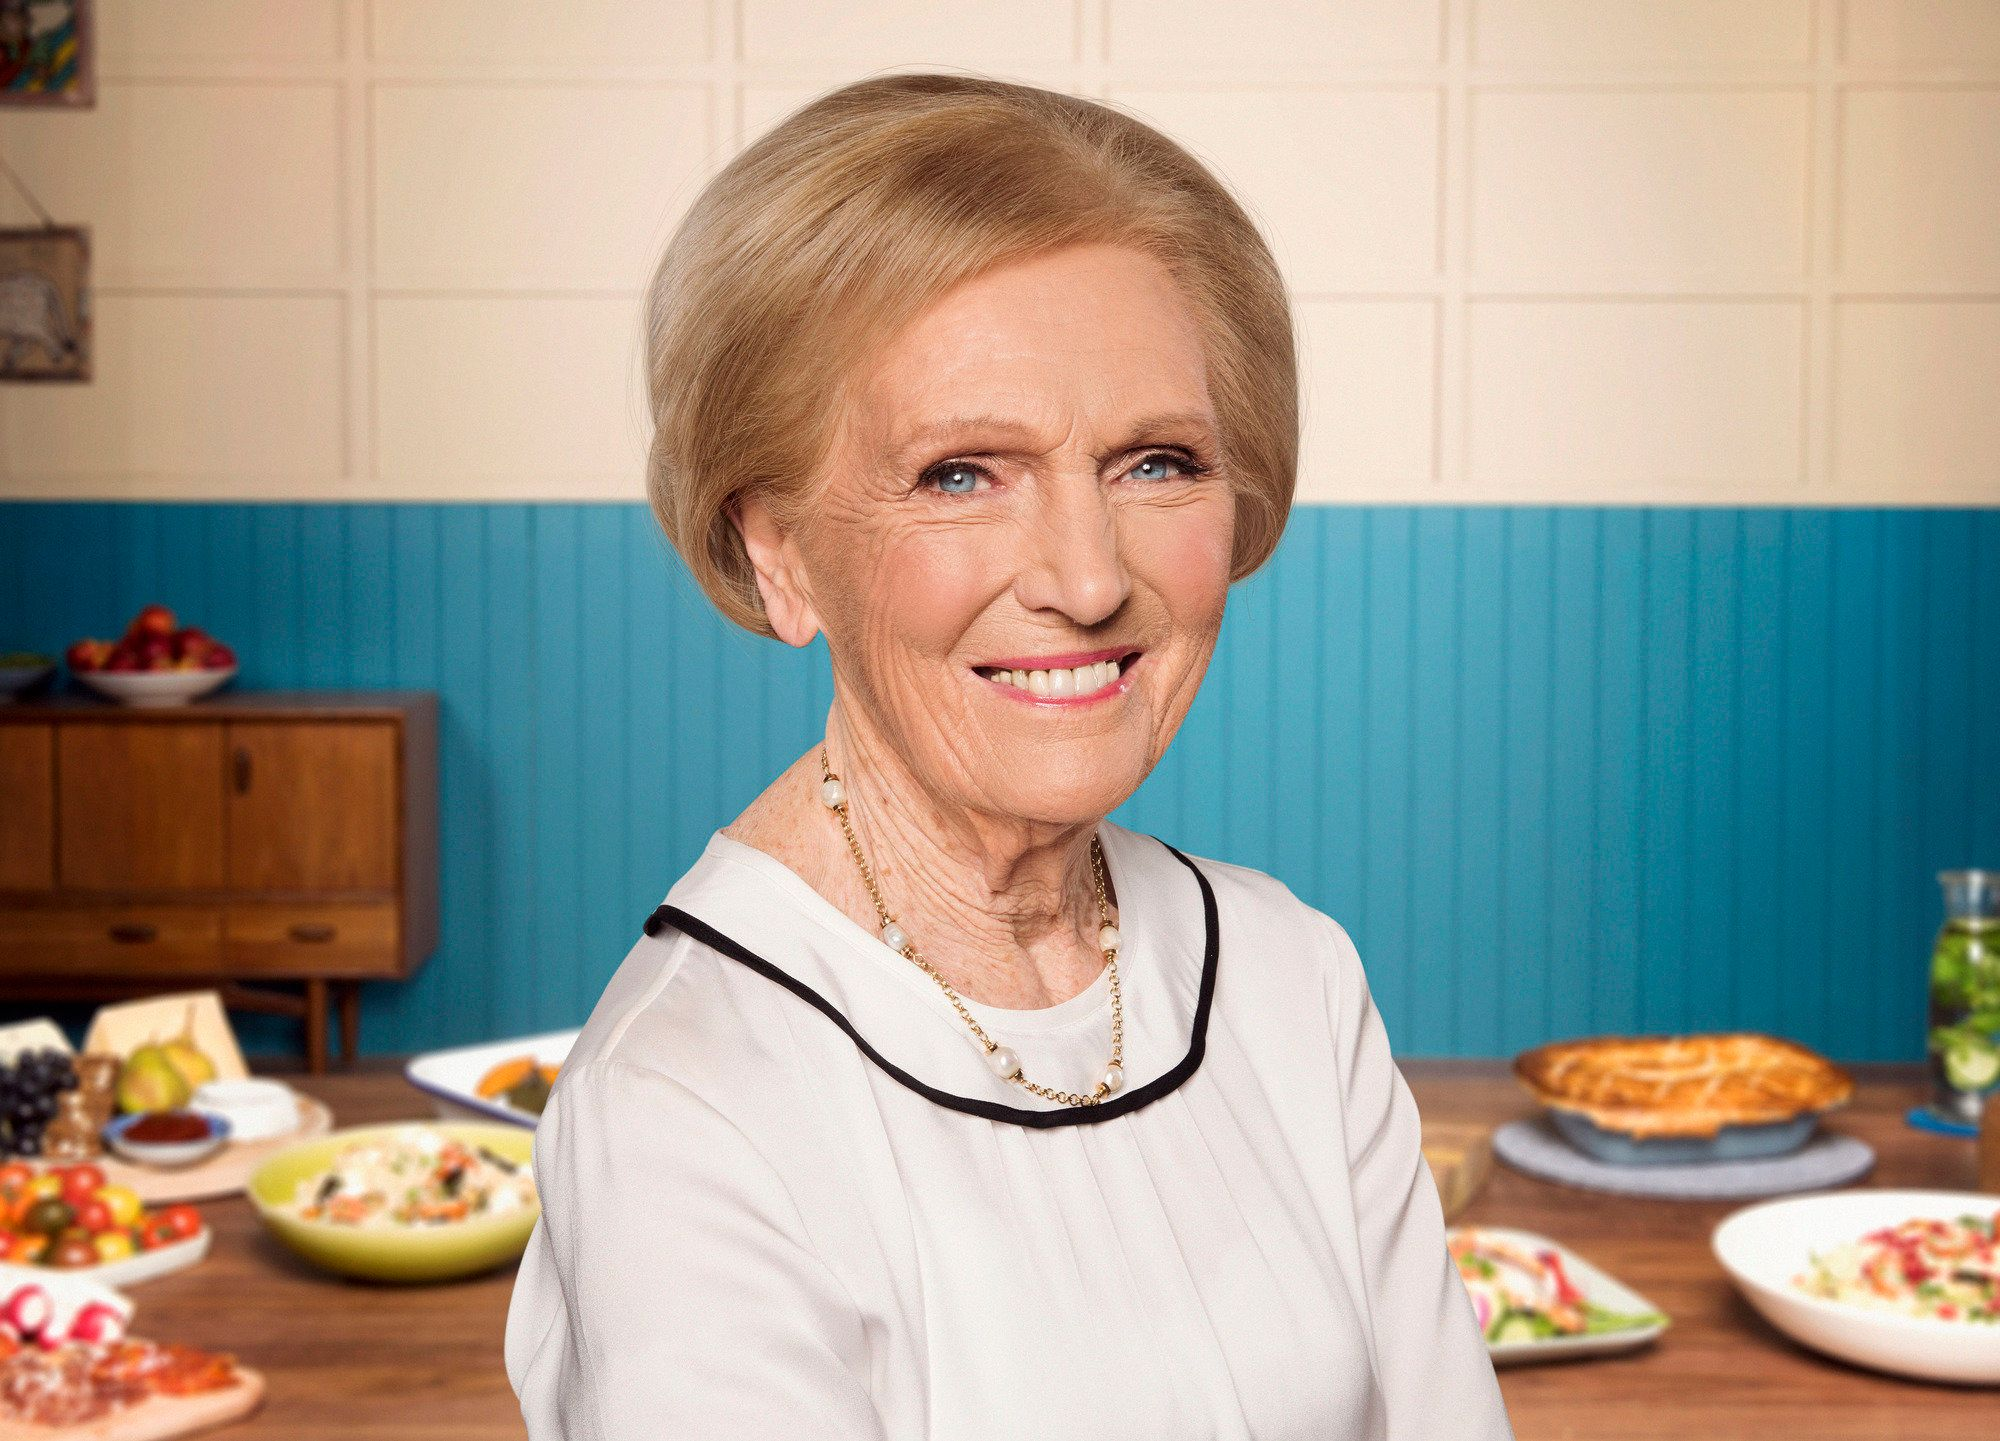 Mary Berry has given her advice for tackling the nation's obesity crisis